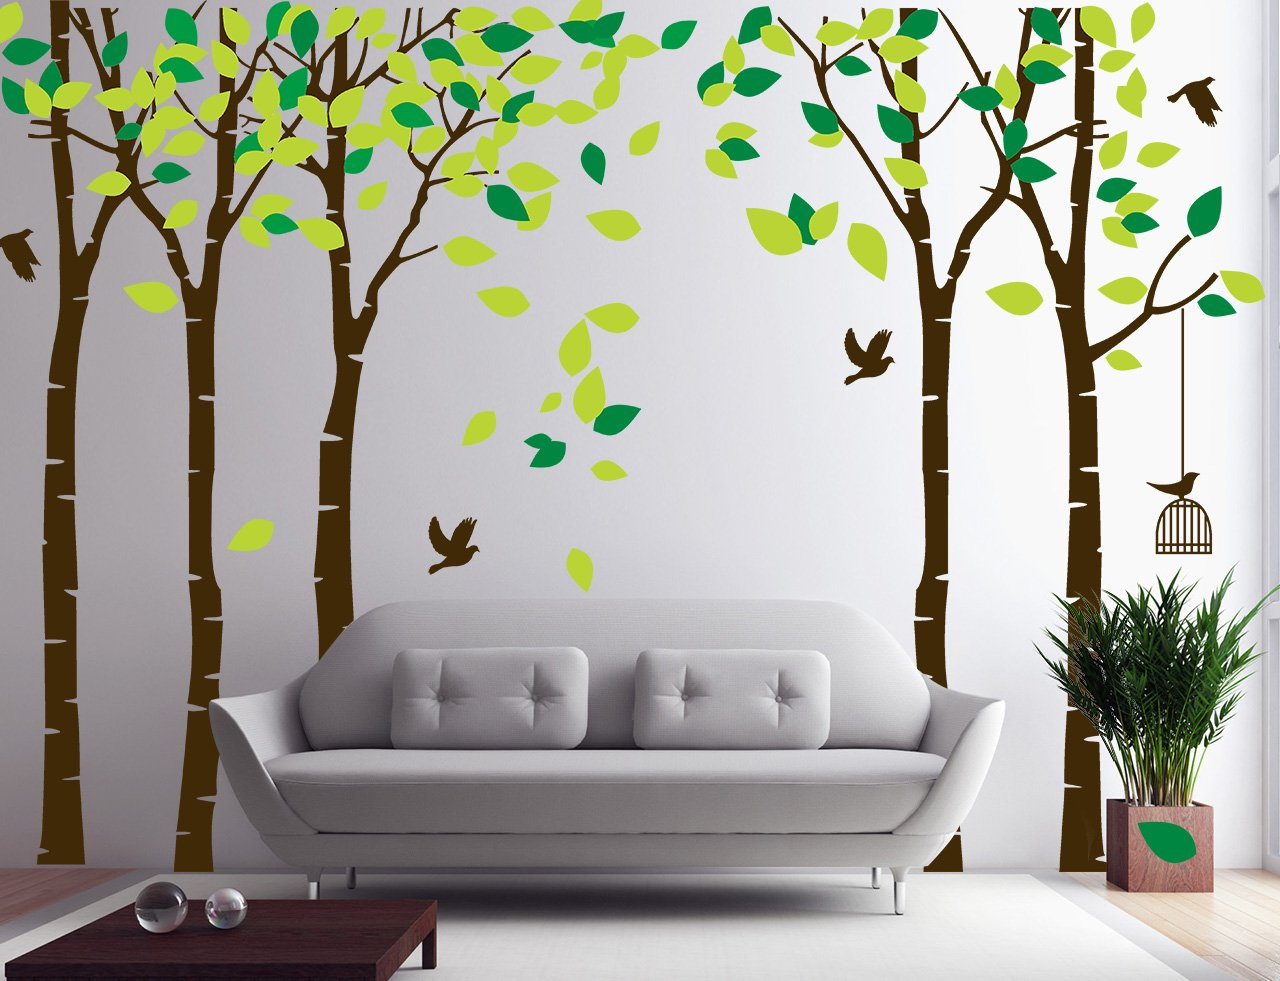 Five Trees Wall Decals Sticker - Forest Birch Mural Paper for Bedroom Kid Baby Nursery Vinyl Removable Woodland DIY Decals 103.9x70.9, Green+Brown by Fymural